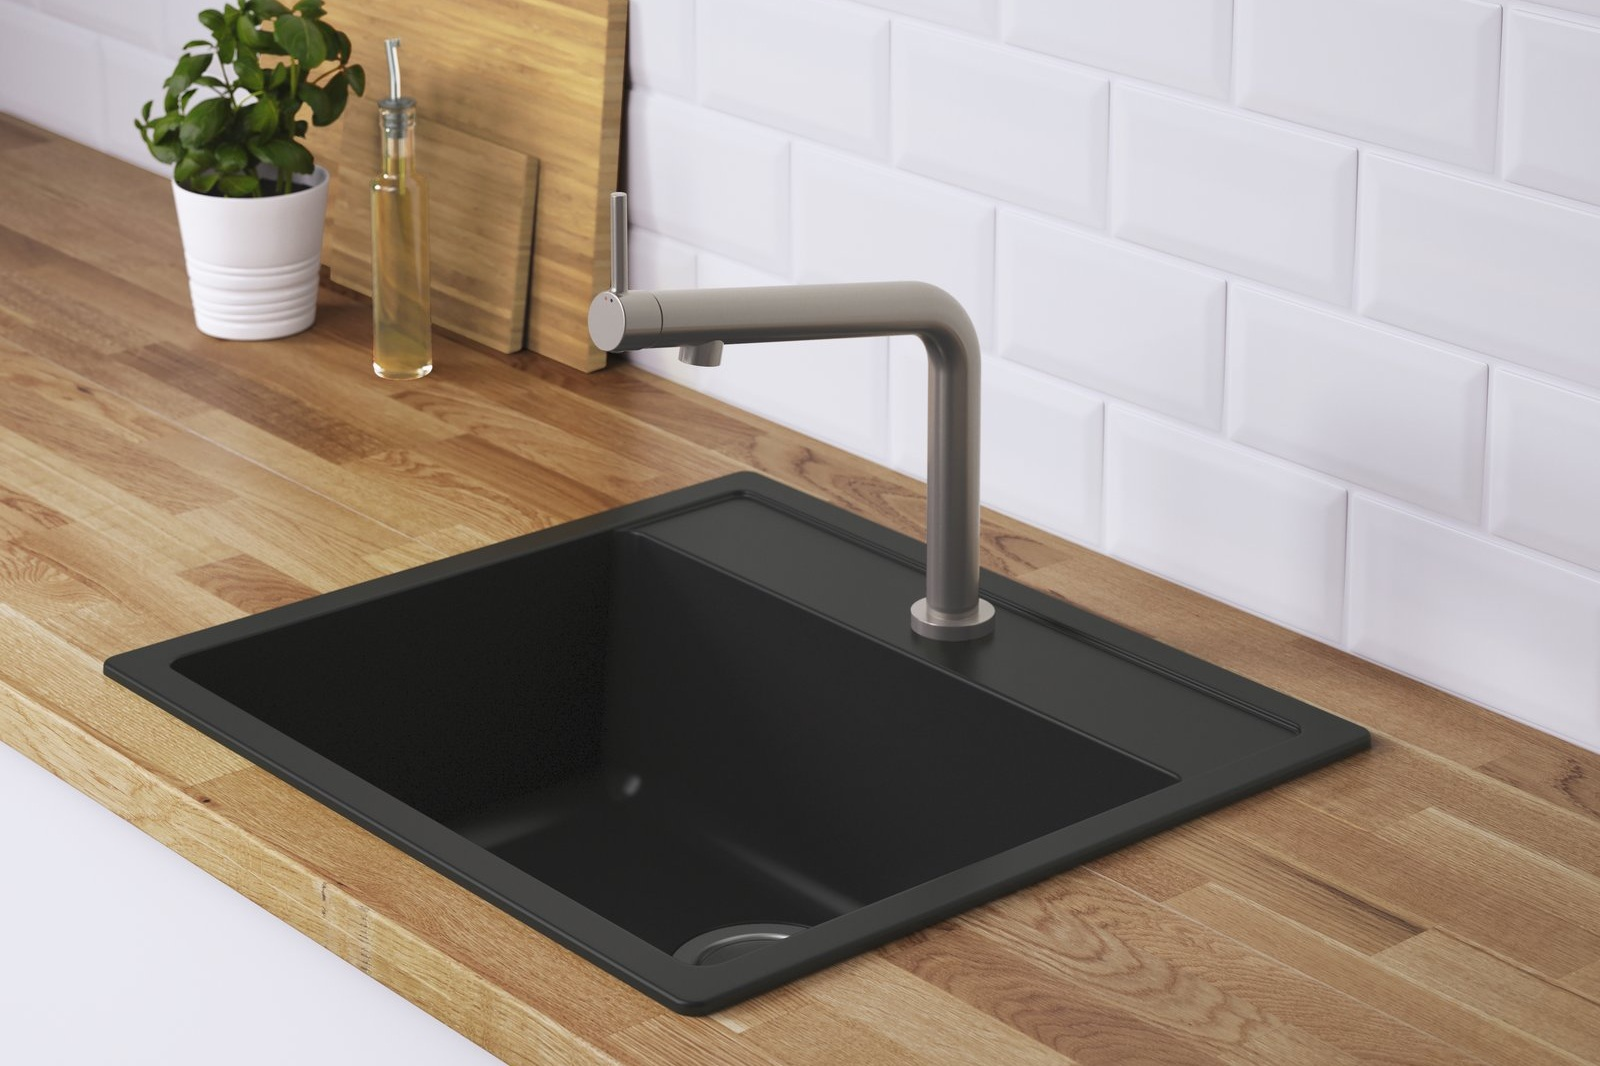 For the least expensive sink options, choose a top mounted sink